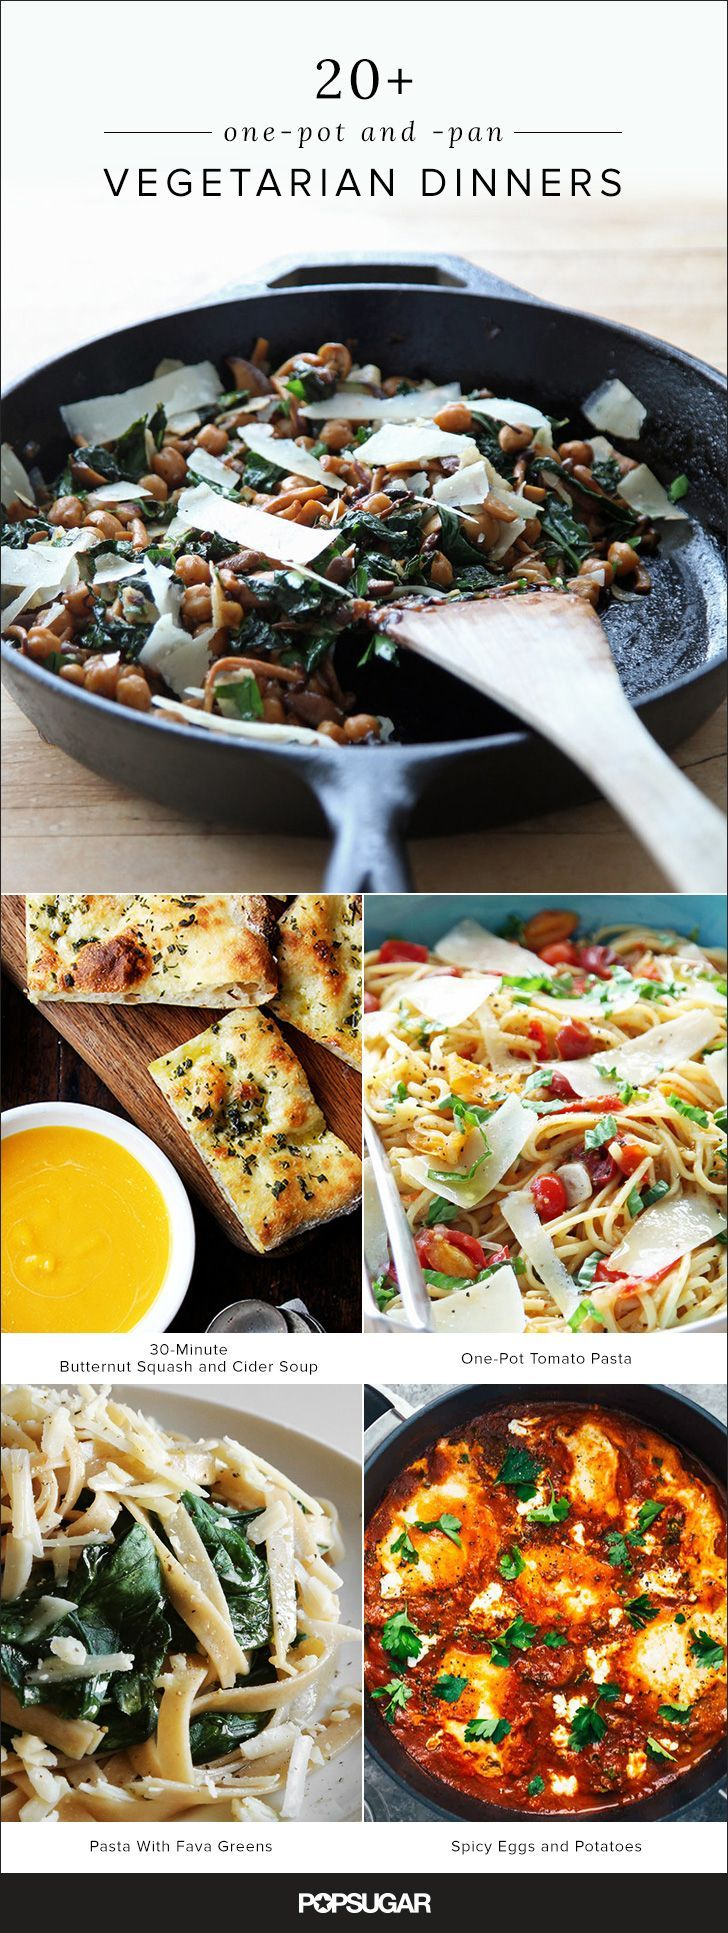 Don't let the idea of scrubbing a pile of dirty dishes dissuade you from cooking dinner tonight. Instead, try one of these ridiculously delicious one-pot and -pan vegetarian meals. That way you can spend more time doing what you actually love, like reading a great book, binge-watching a favorite show on Netflix, dishing with your besties over a glass of wine, or whatever floats your boat.